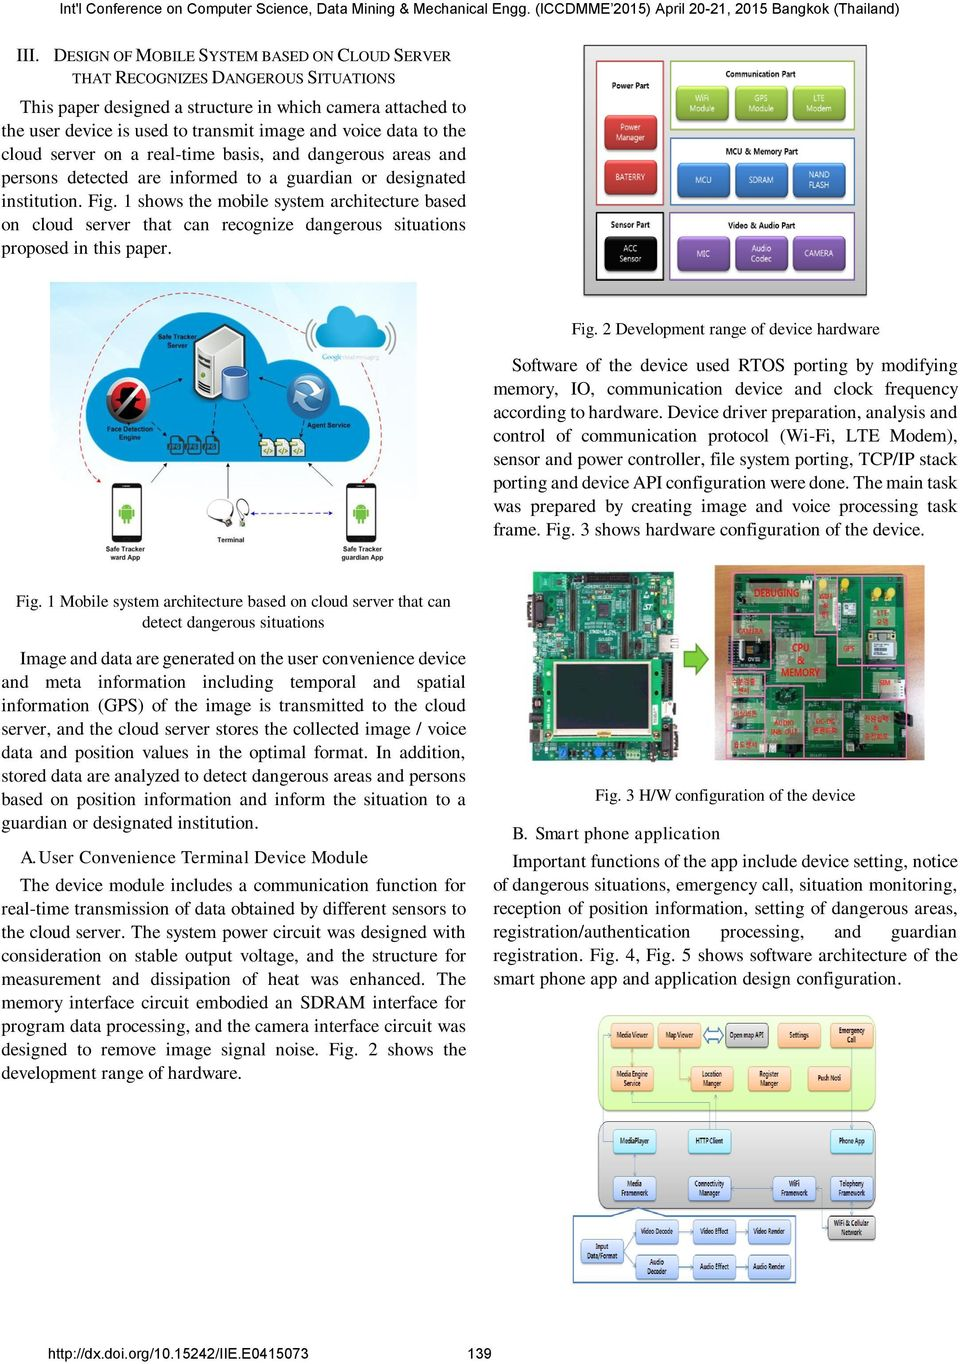 1 shows the mobile system architecture based on cloud server that can recognize dangerous situations proposed in this paper. Fig.